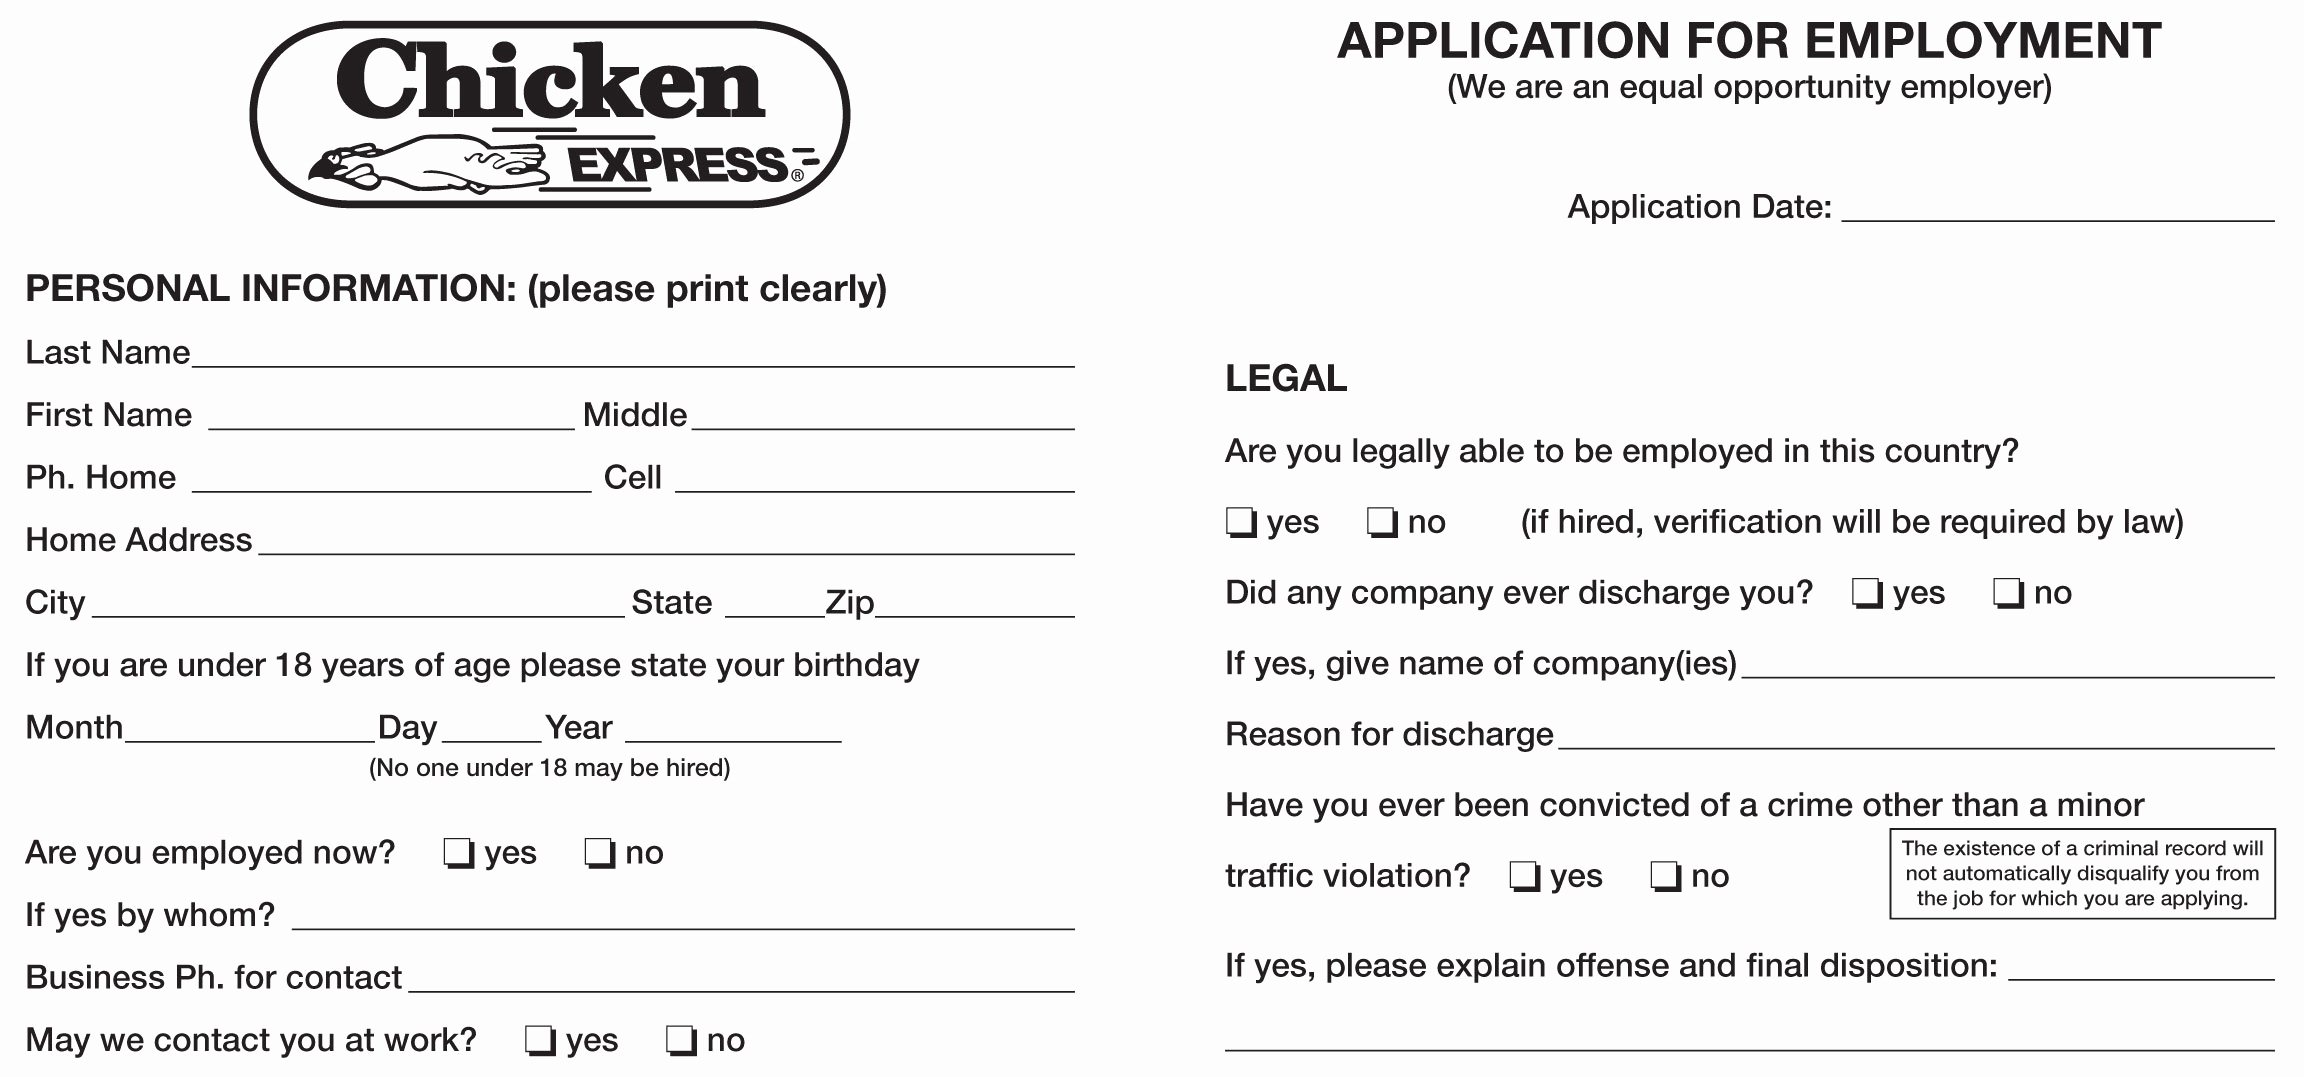 Job Application form Pdf Luxury Chicken Express Job Application Printable Employment Pdf